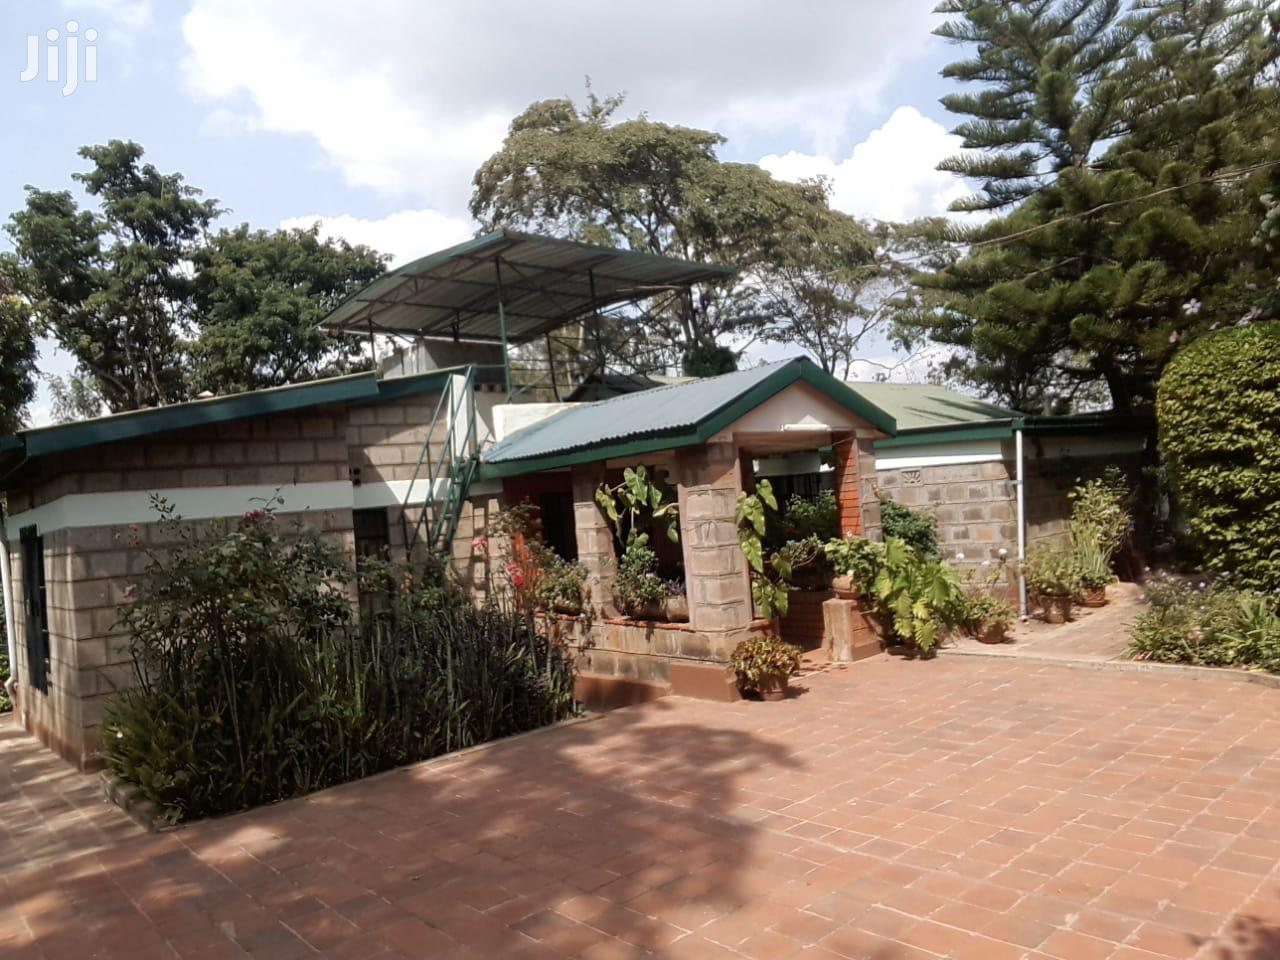 3 Bedroom House With an SQ to Let in Karen